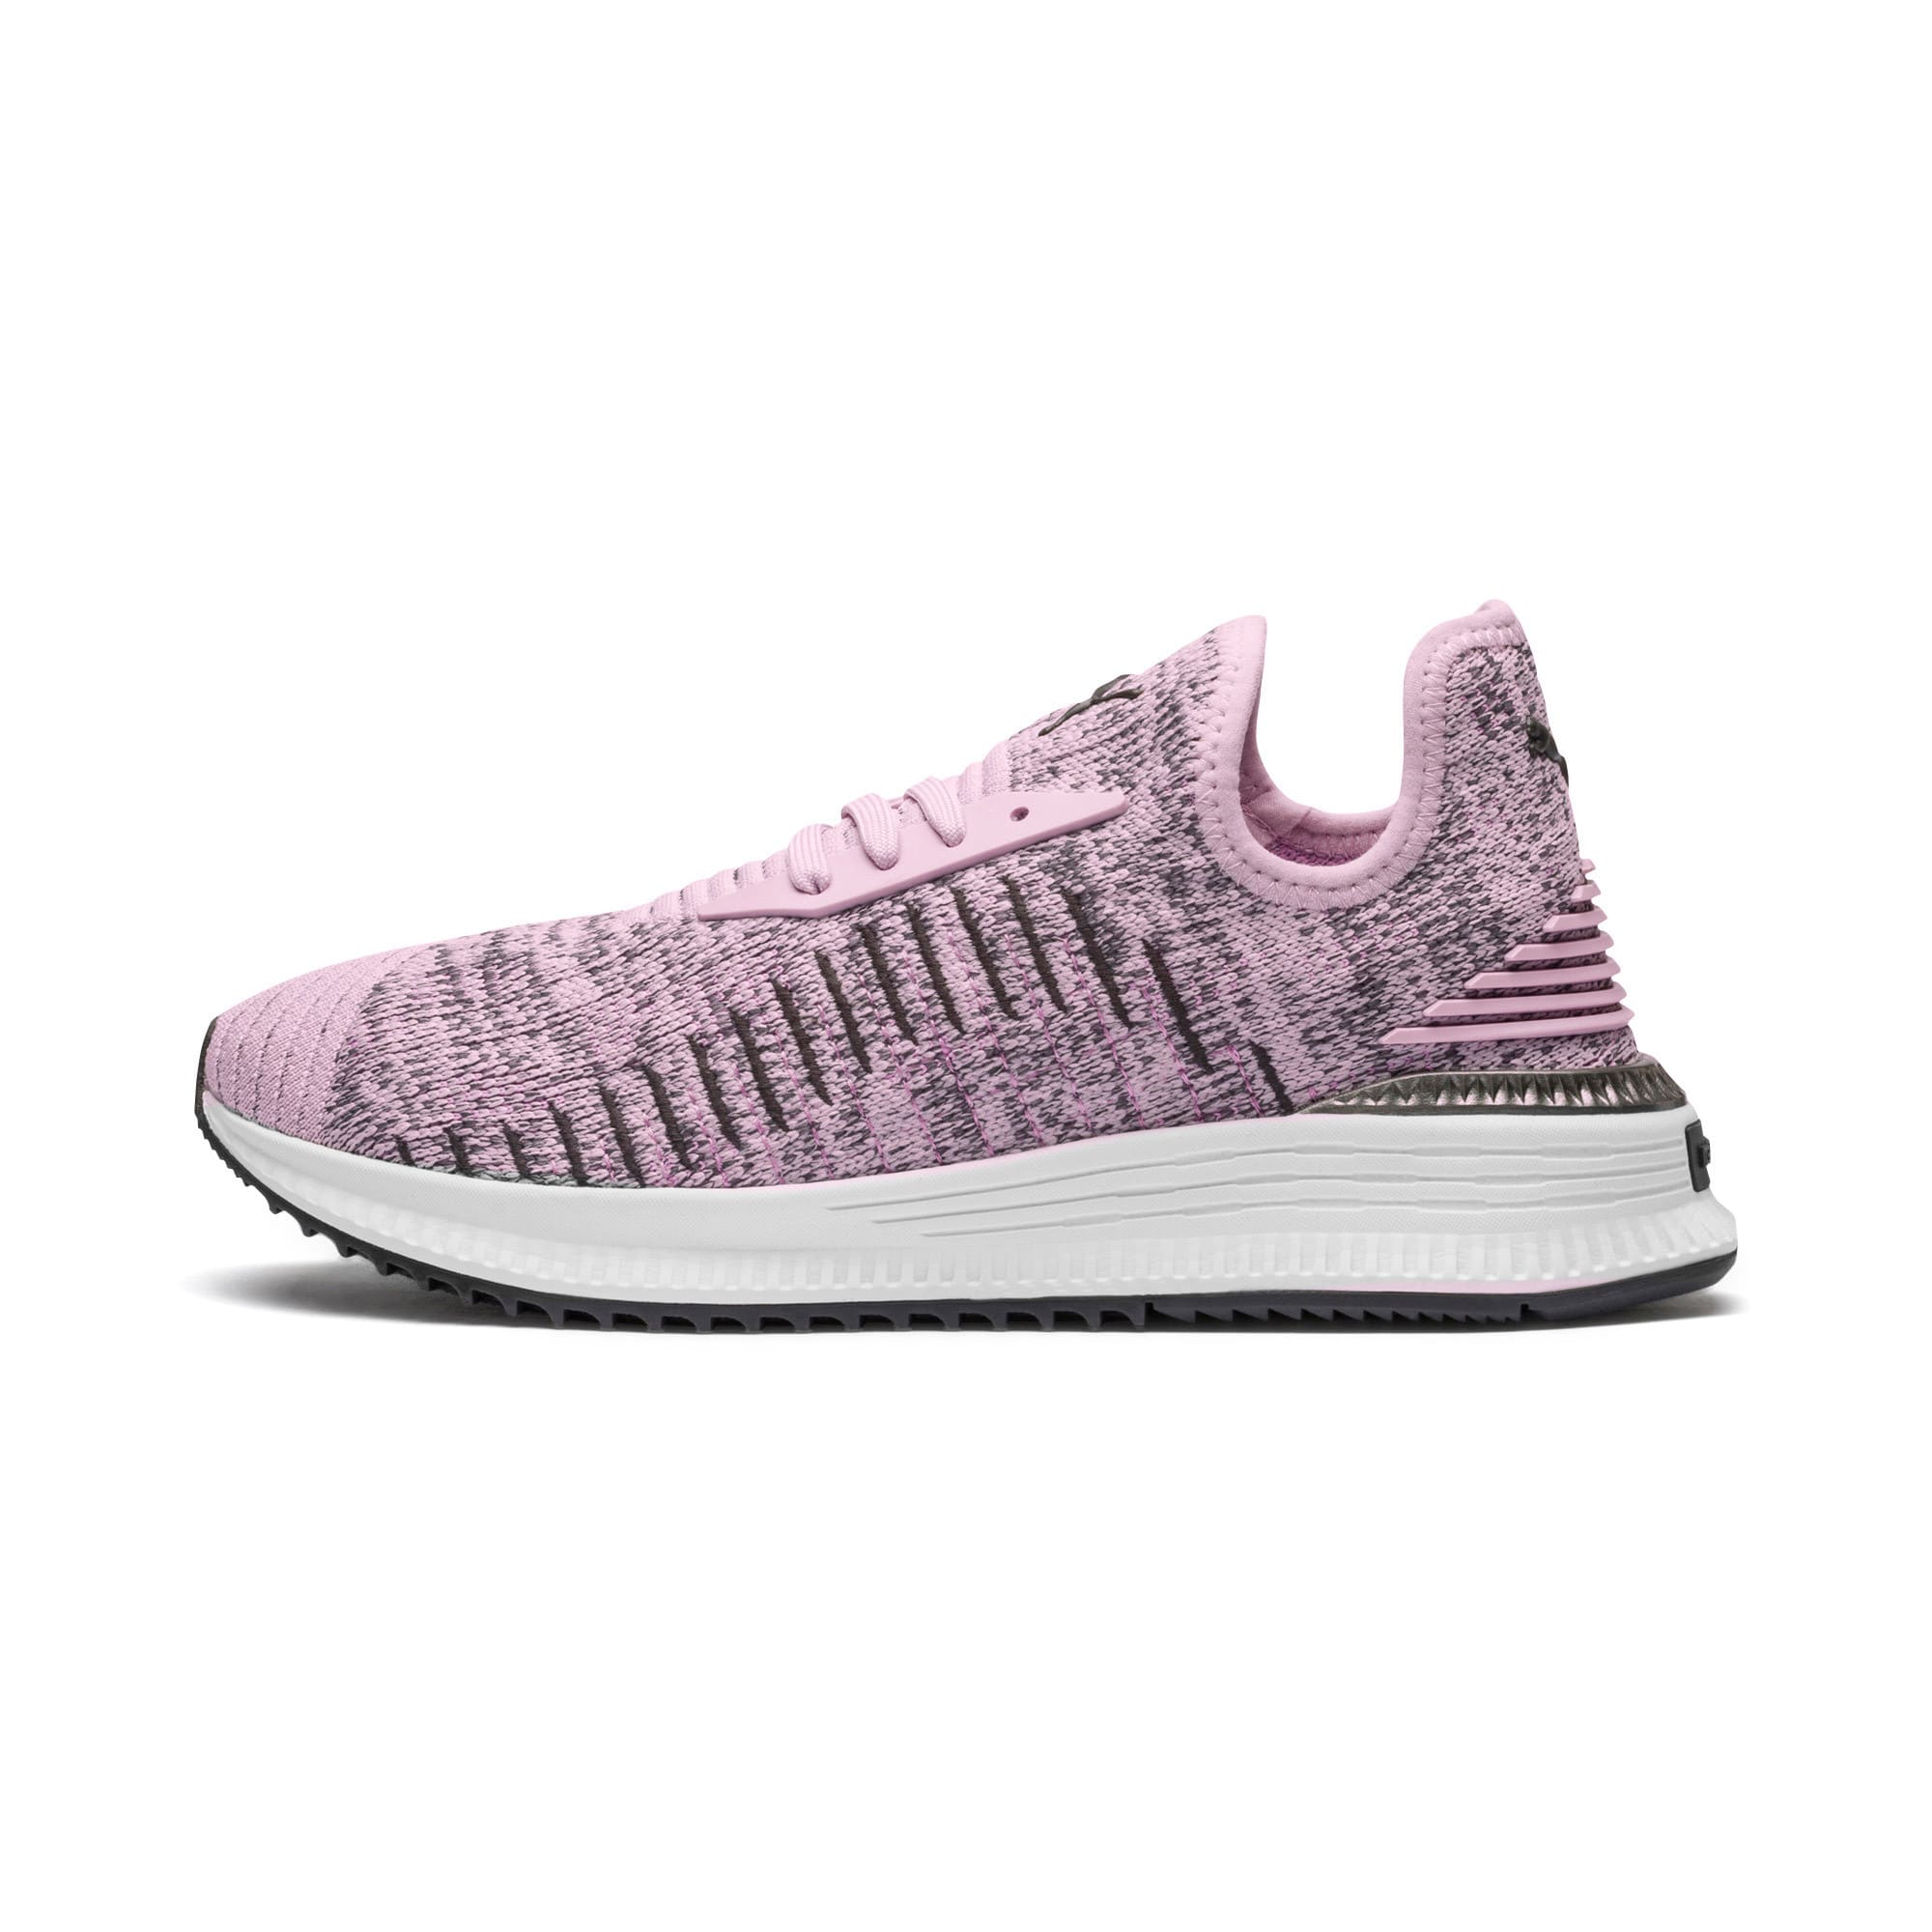 Thumbnail 1 of AVID evoKNIT Mosaic Women's Sneakers, WOrchid-IGate-Orchid, medium